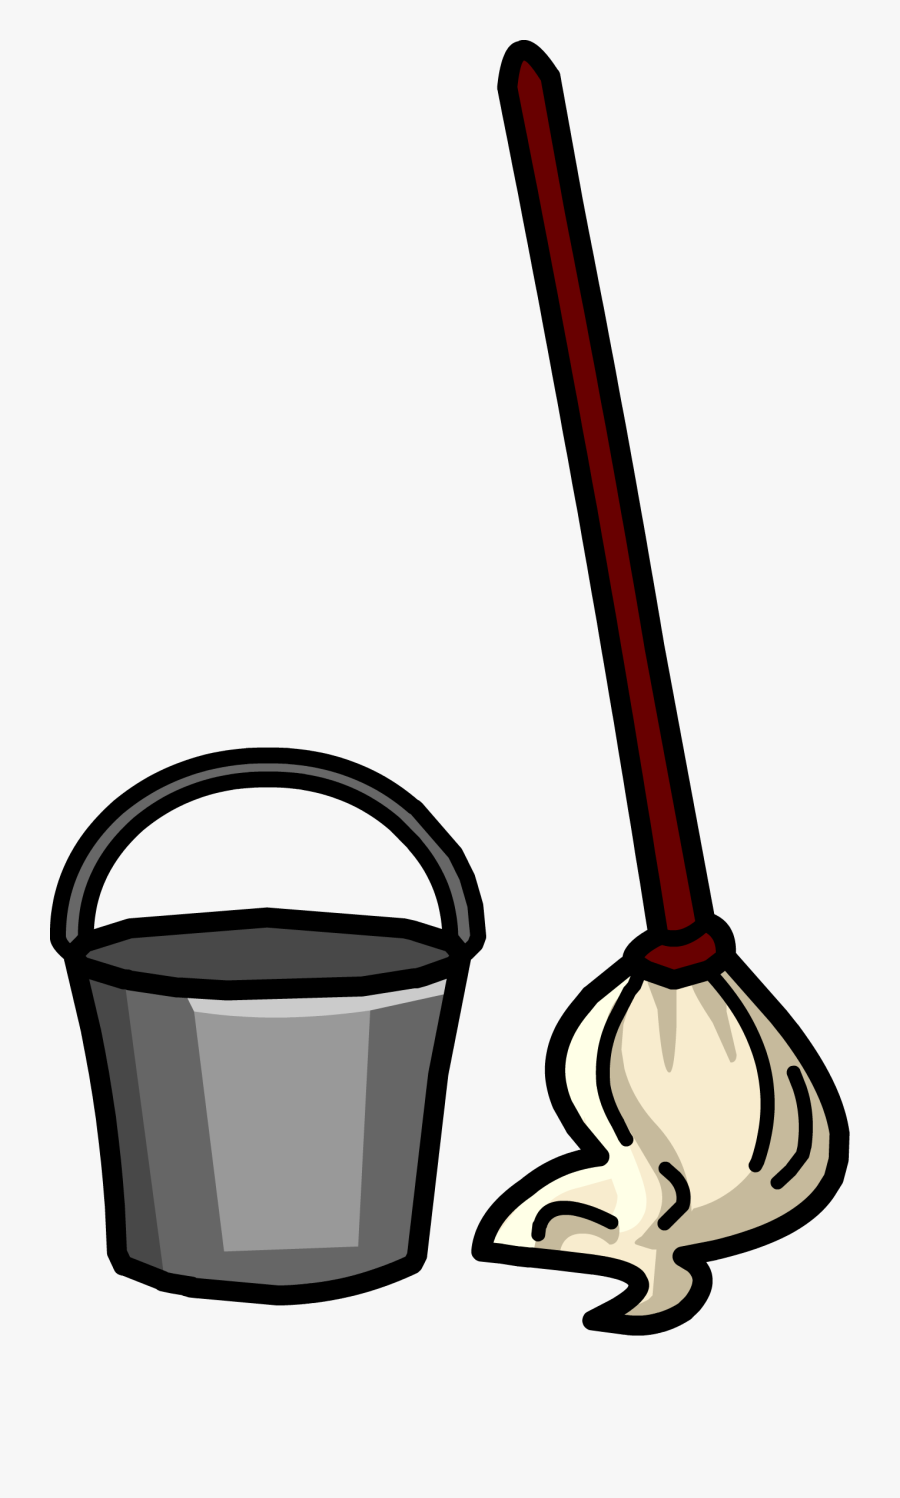 Mop And Broom Clipart - Bucket And Mop Clipart, Transparent Clipart